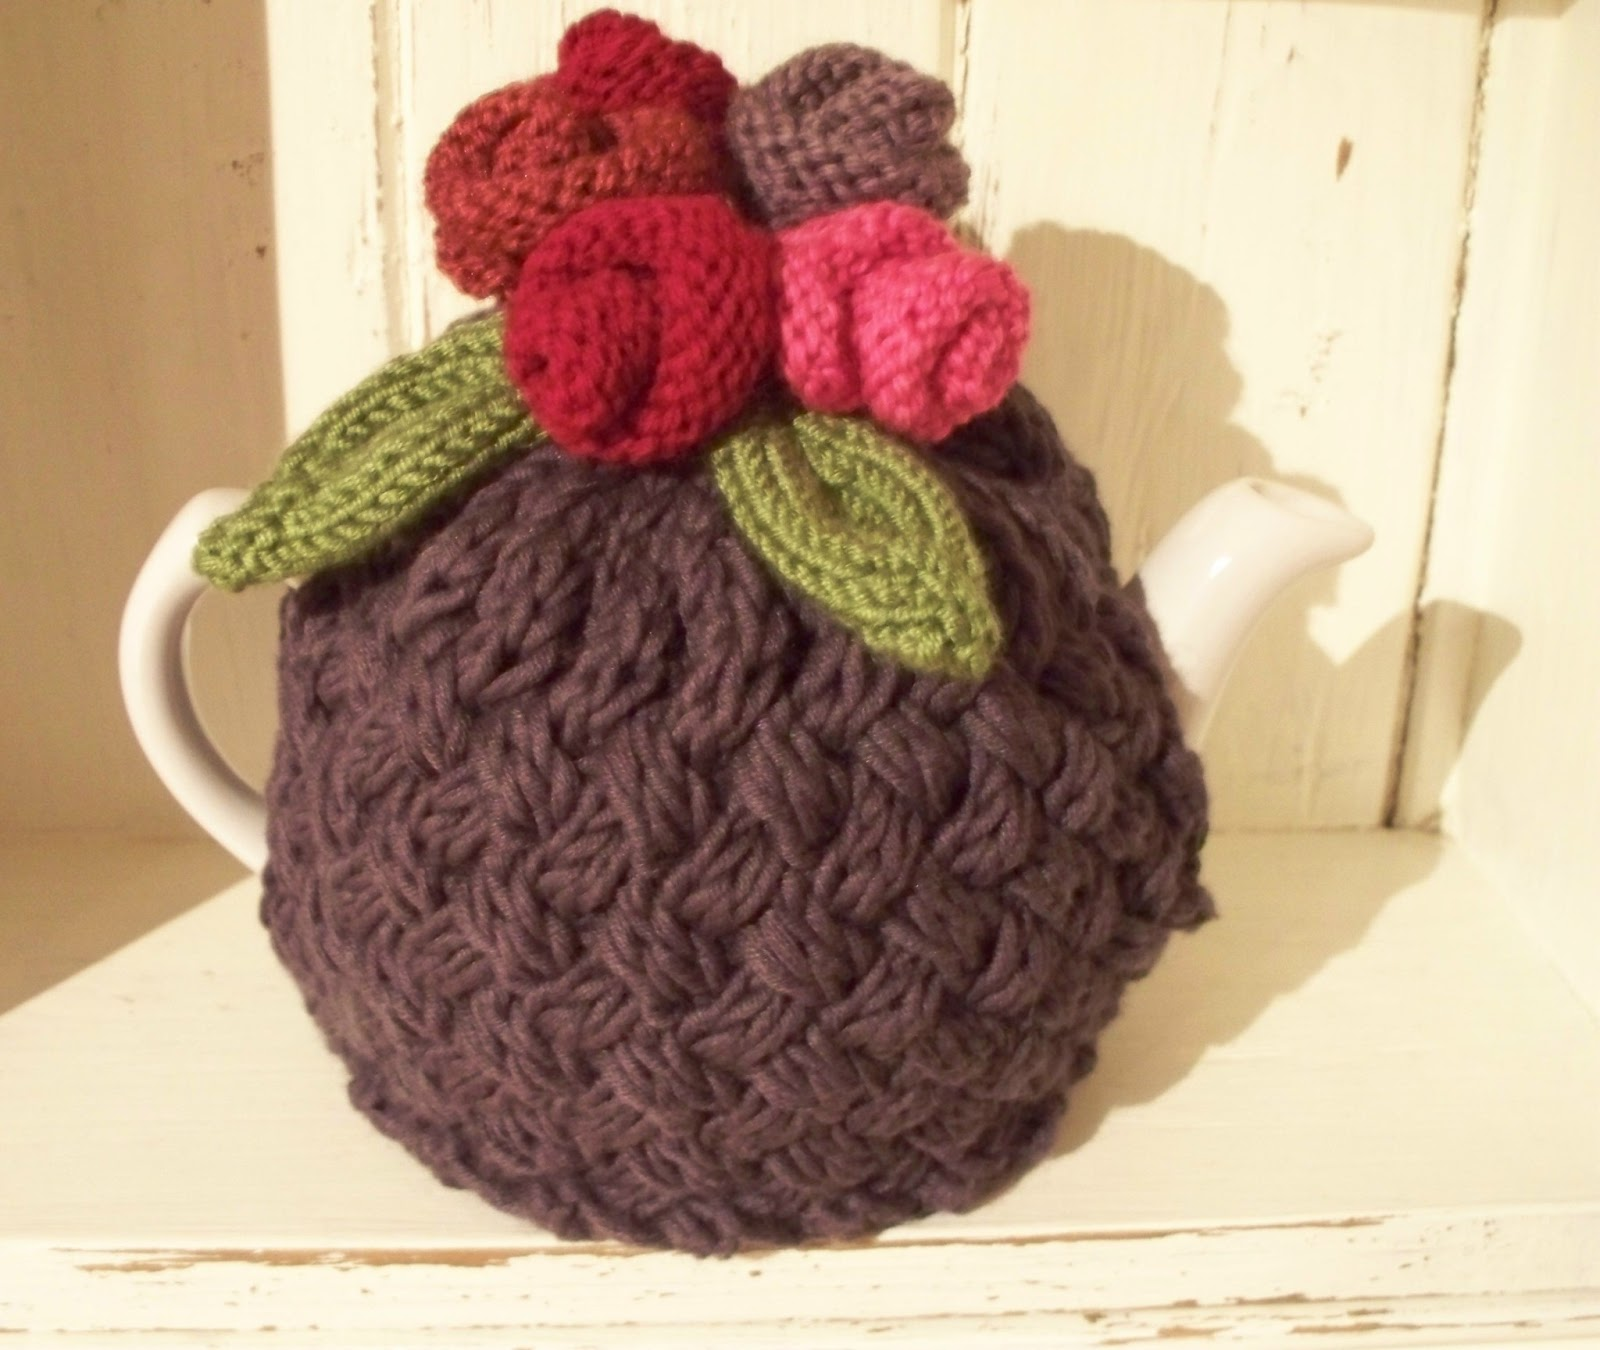 Lavender attic thrify handknitted pressies tea cosy pattern Bhg g